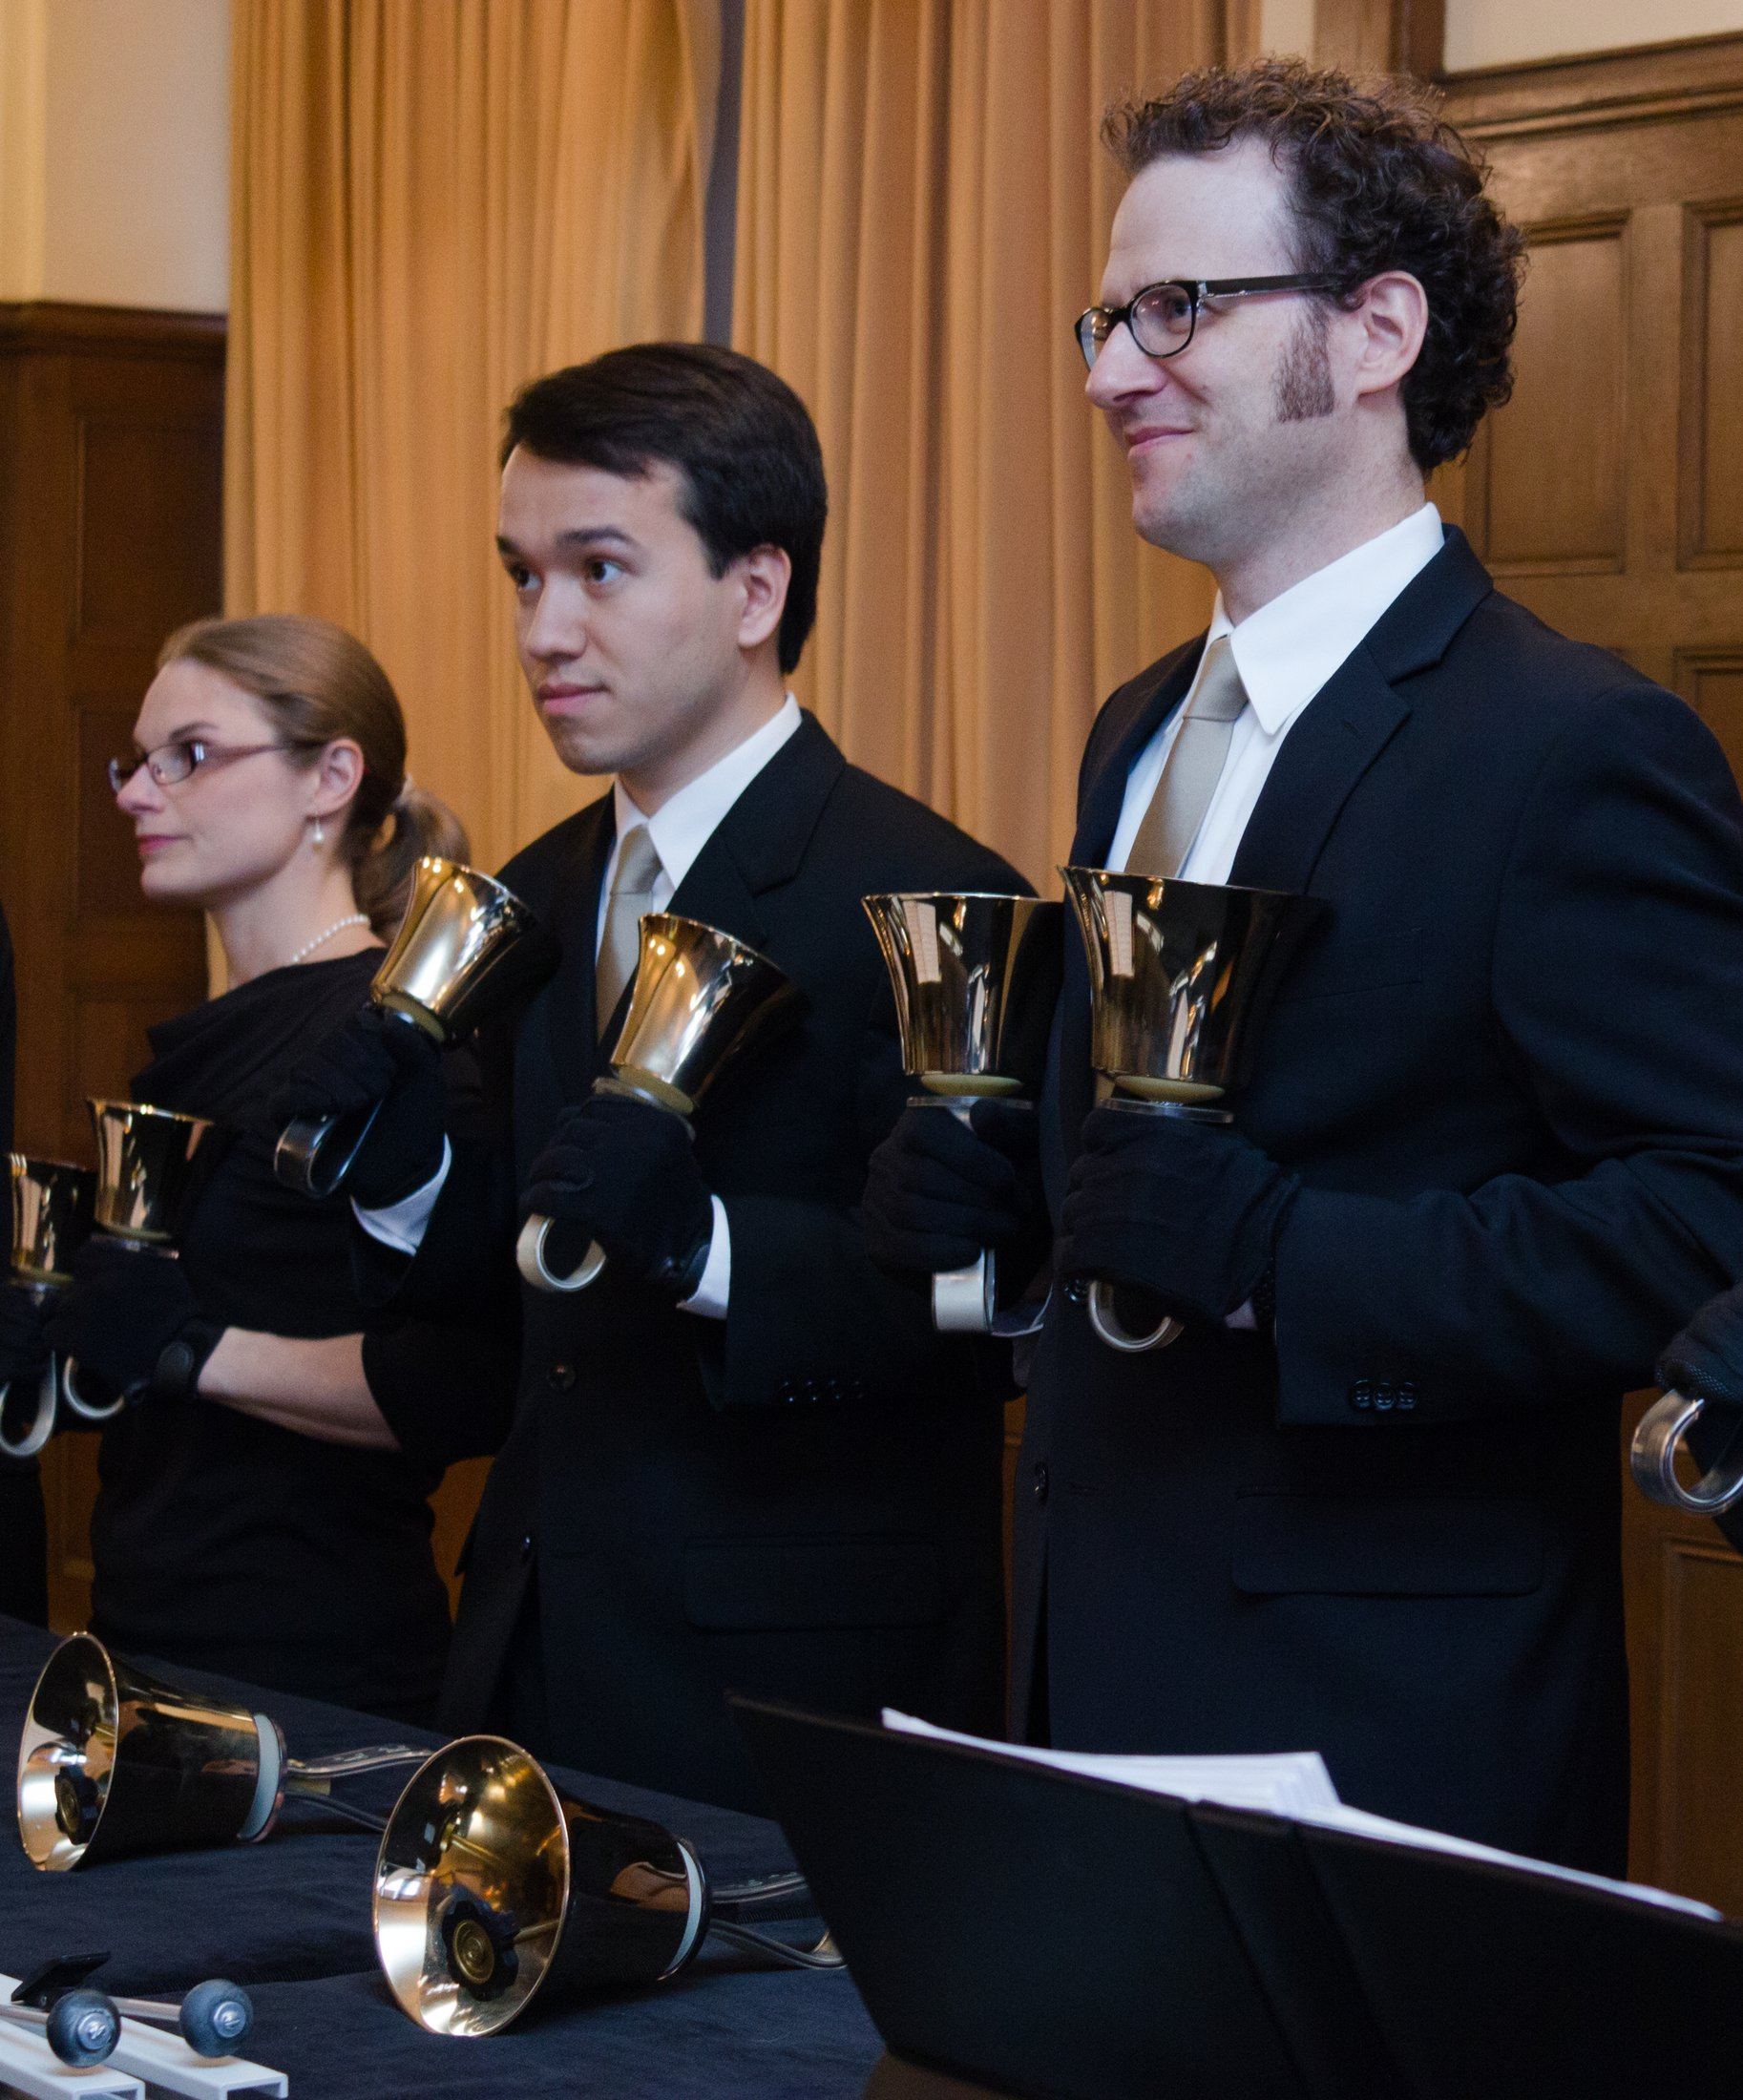 Handbells in Boston